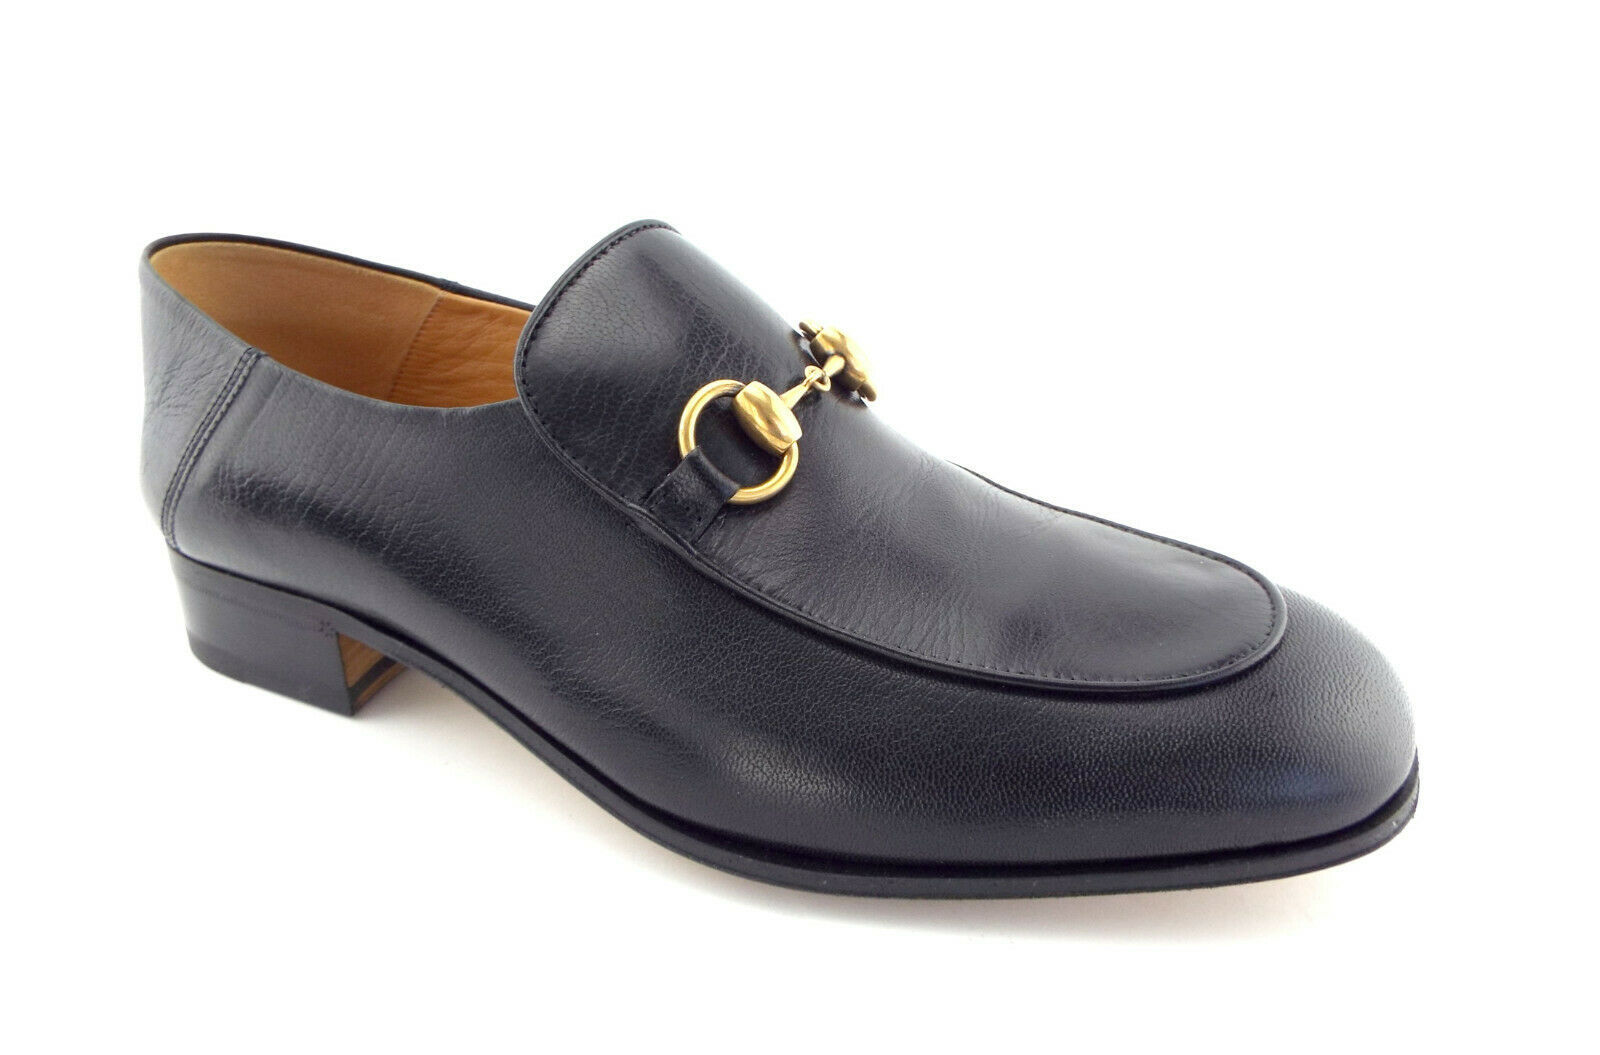 982819c9b New GUCCI Size 8 US Black Leather Collapsable Horsebit Loafers Shoes 7 UK -  $749.00